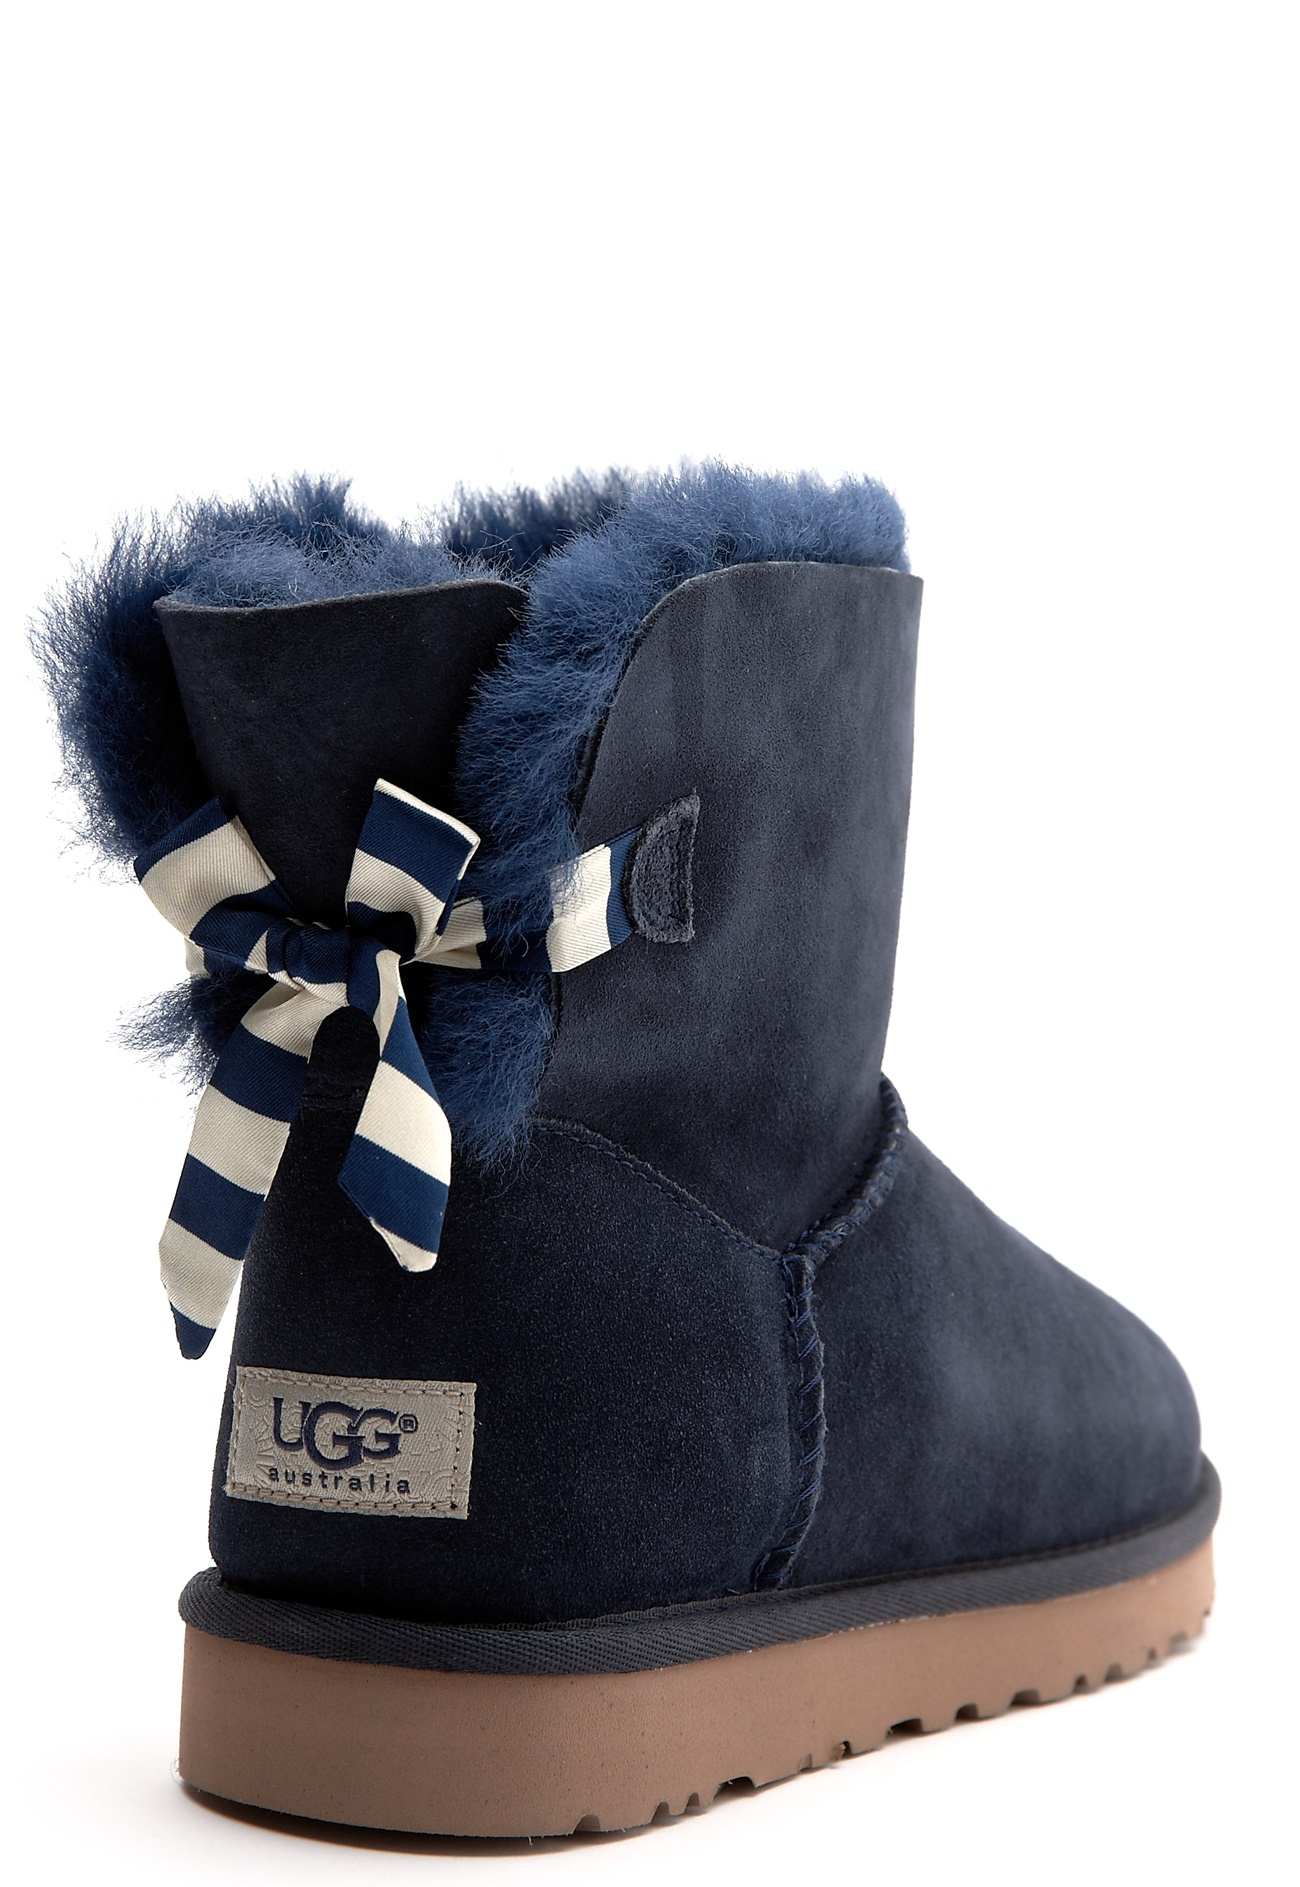 ugg australia mini shearling stiefel mit schleife. Black Bedroom Furniture Sets. Home Design Ideas